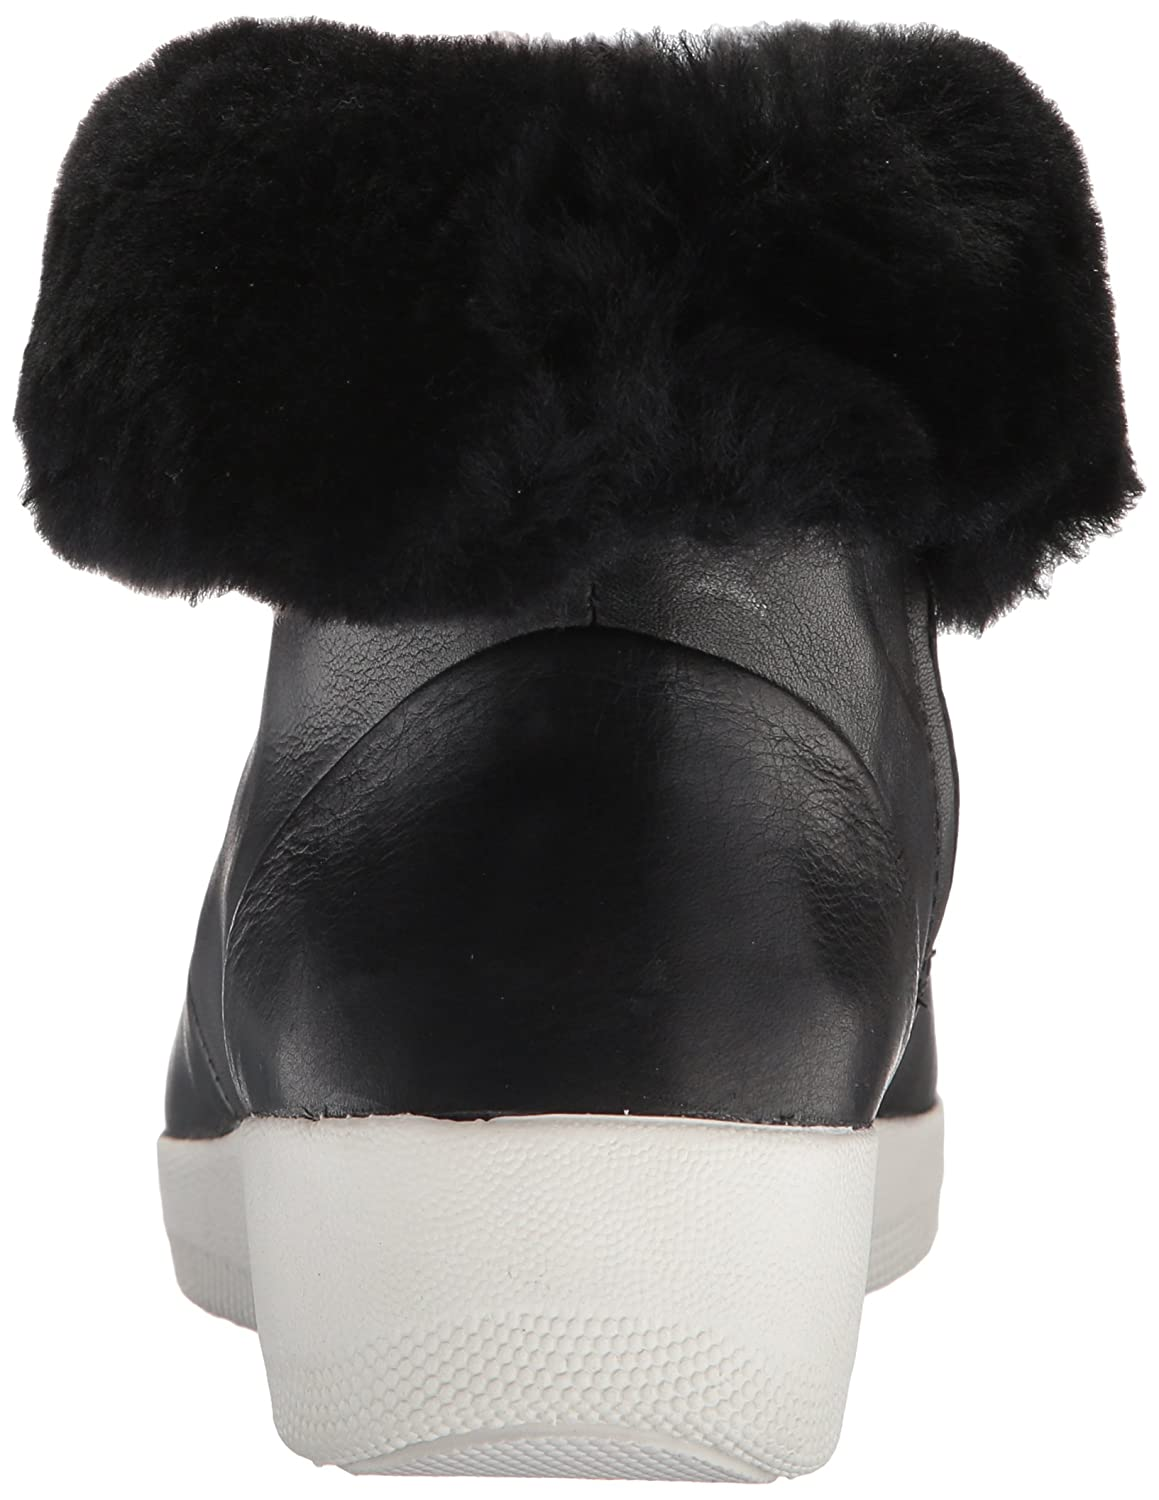 4a3f22e1ea648 Fitflop Womens Black Skatebootie Shearling Boots  Amazon.co.uk  Shoes   Bags